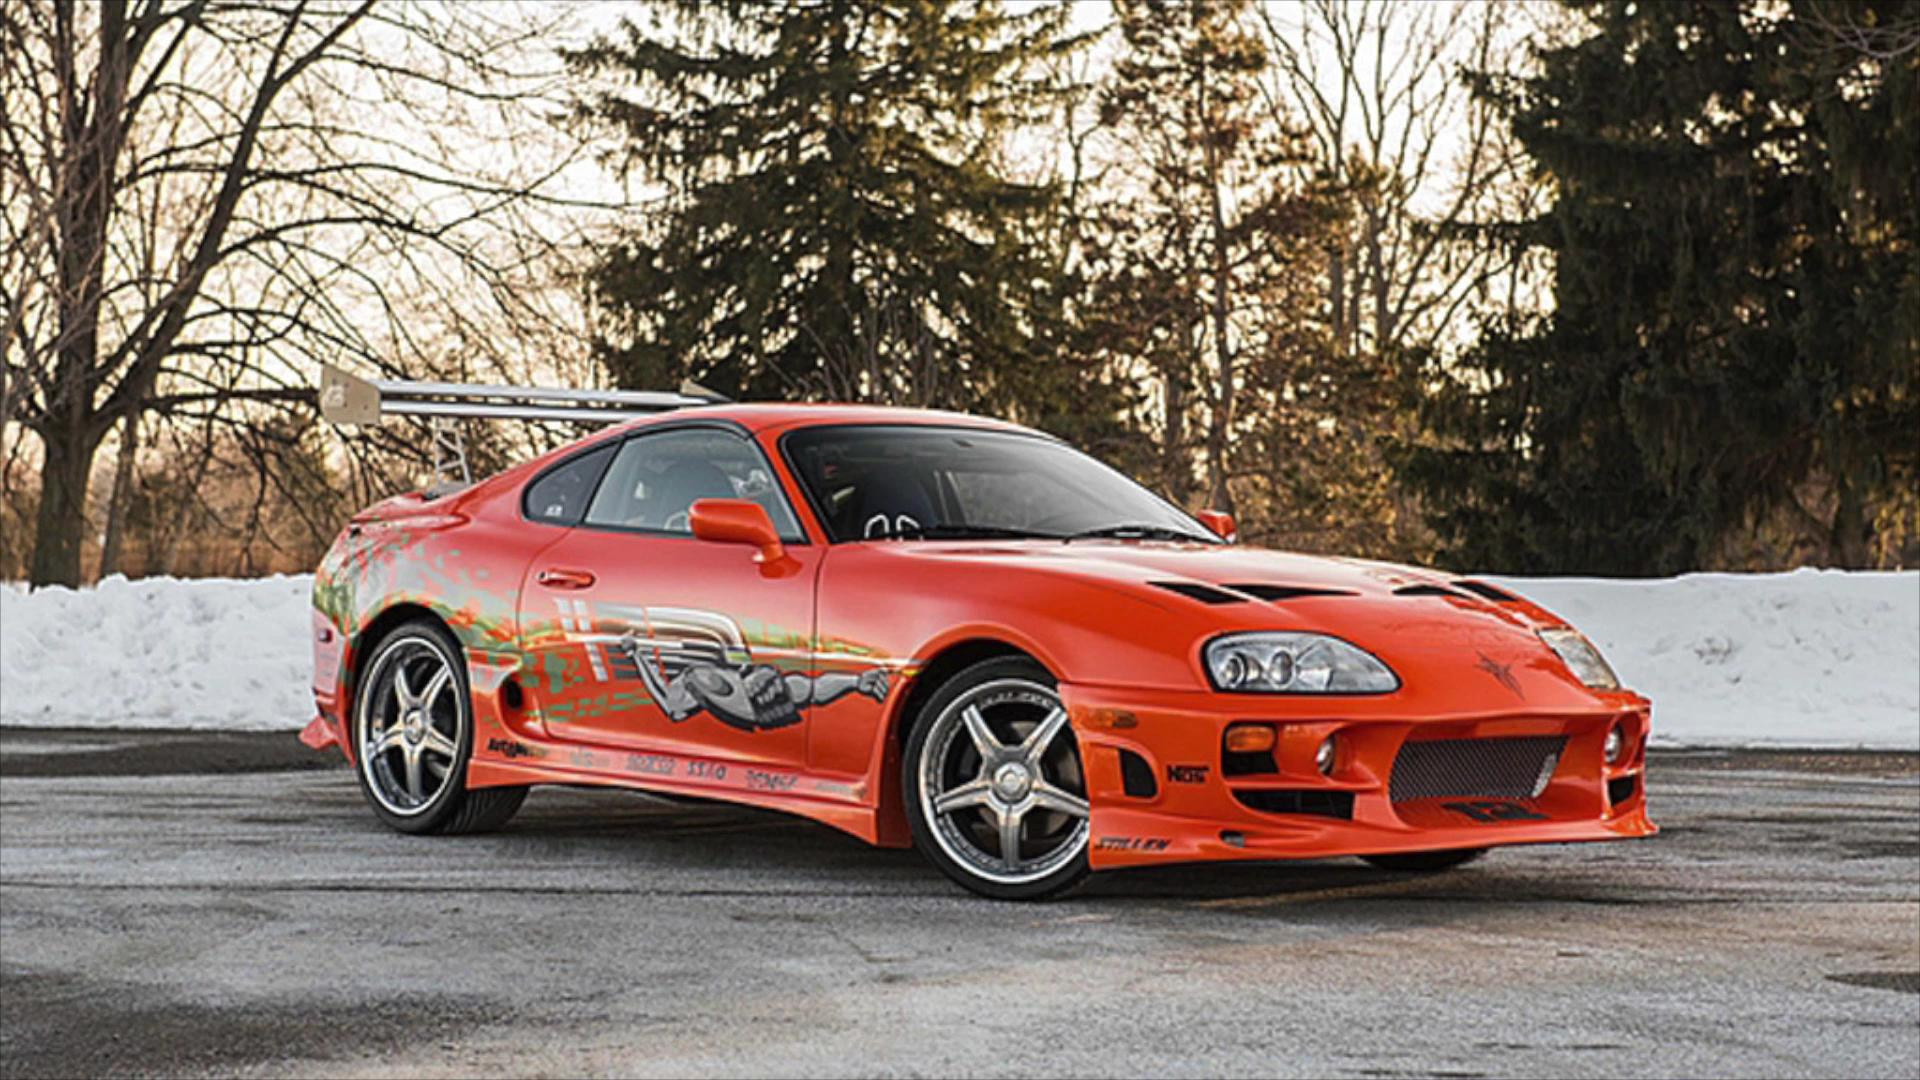 Paul Walker-driven 'Fast and the Furious' car up for sale